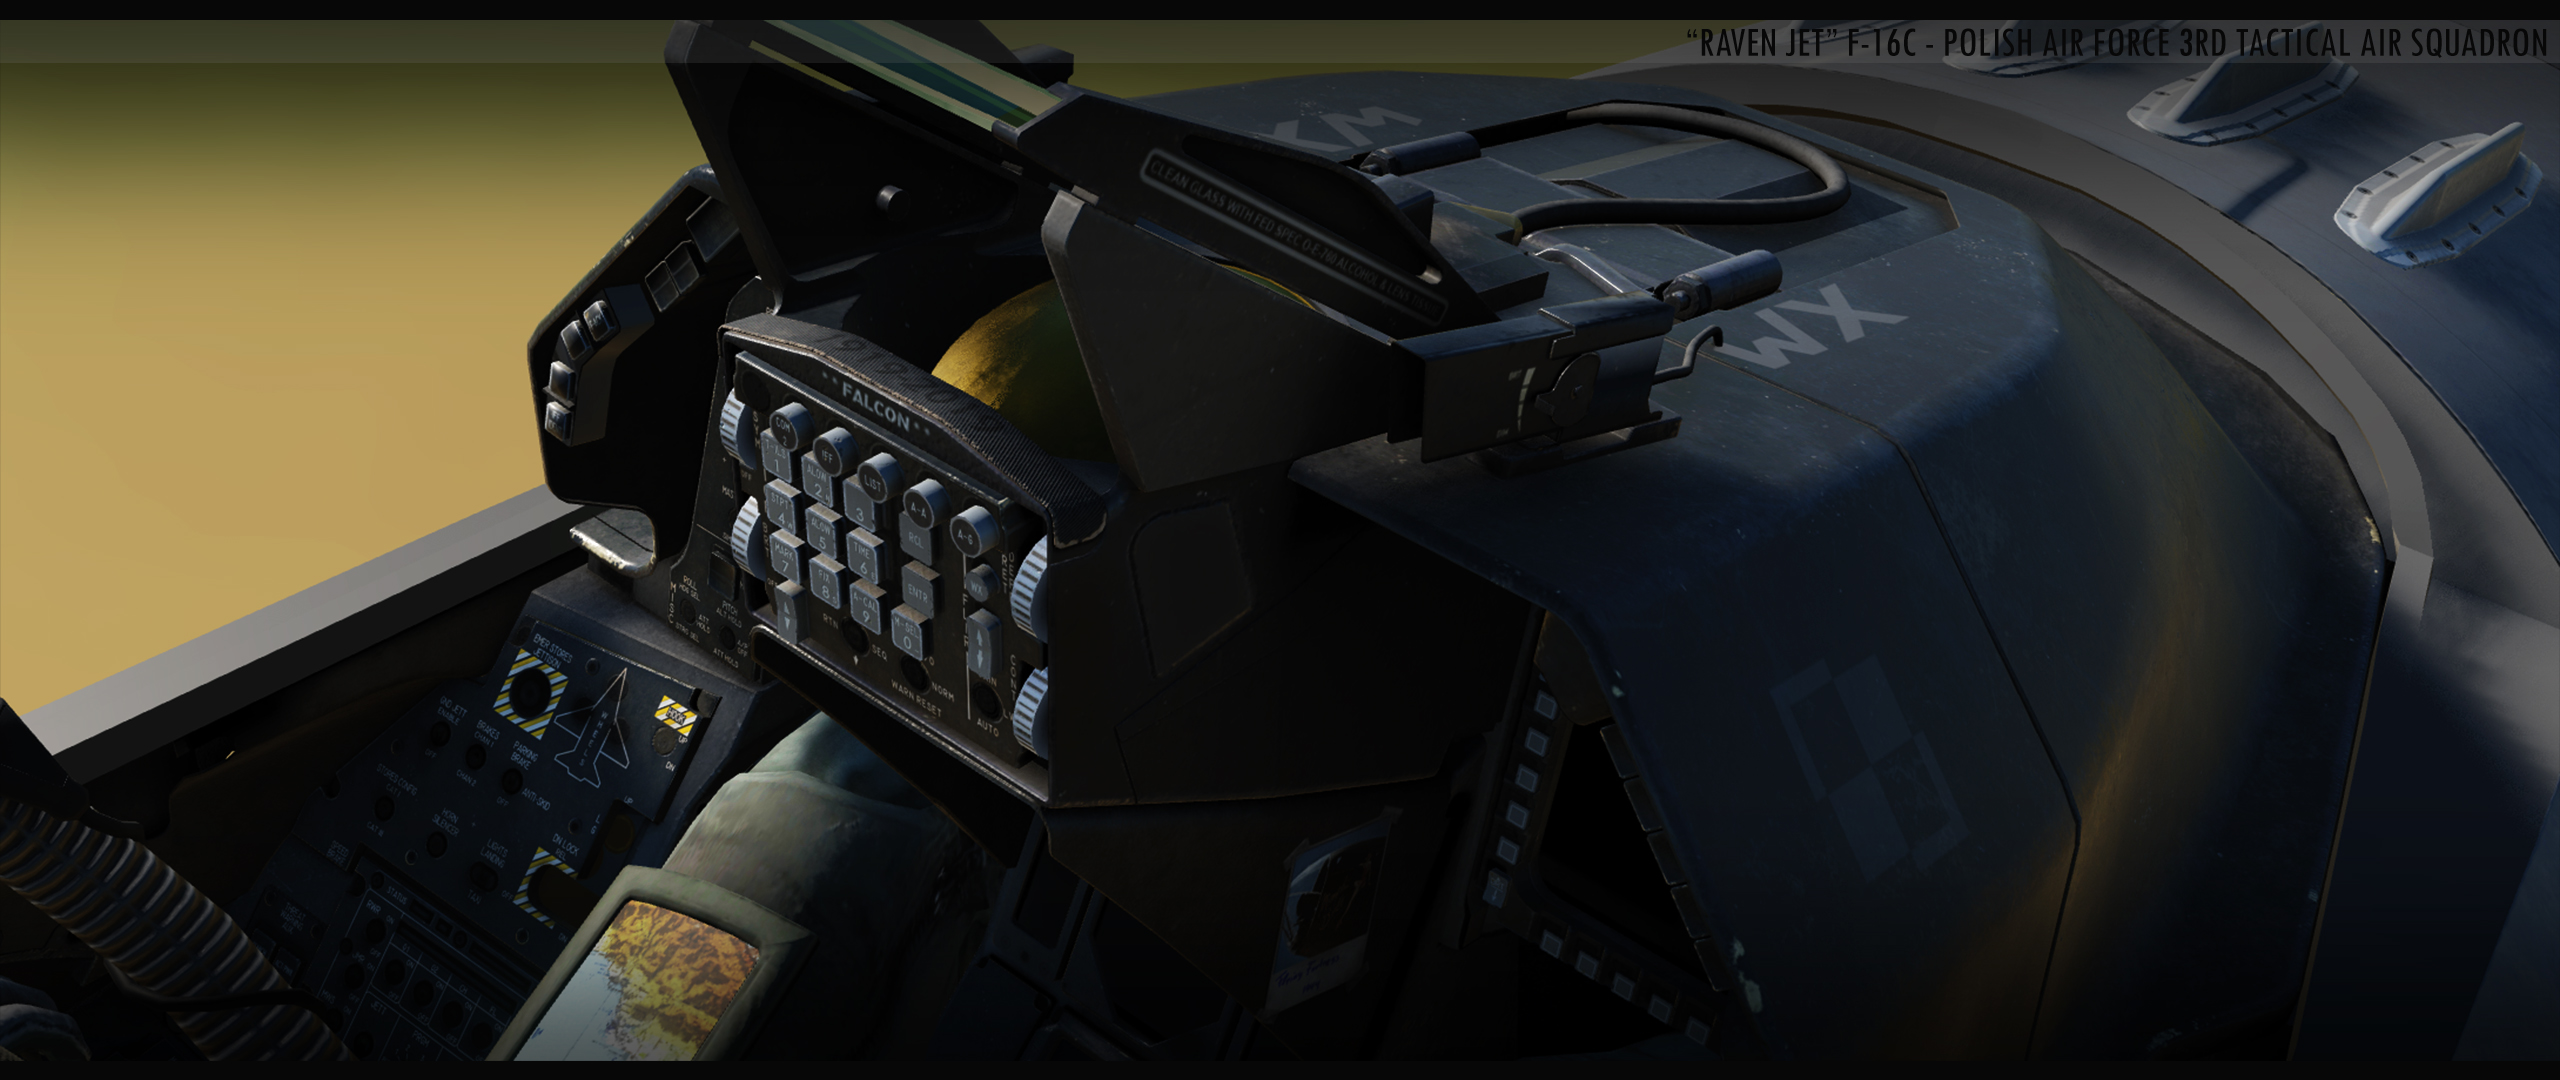 """RAVEN JET"" COCKPIT - F-16C FIGHTER FROM POLISH AIR FORCE 3RD TACTICAL AIR SQUADRON v002  (HOTFIX)"